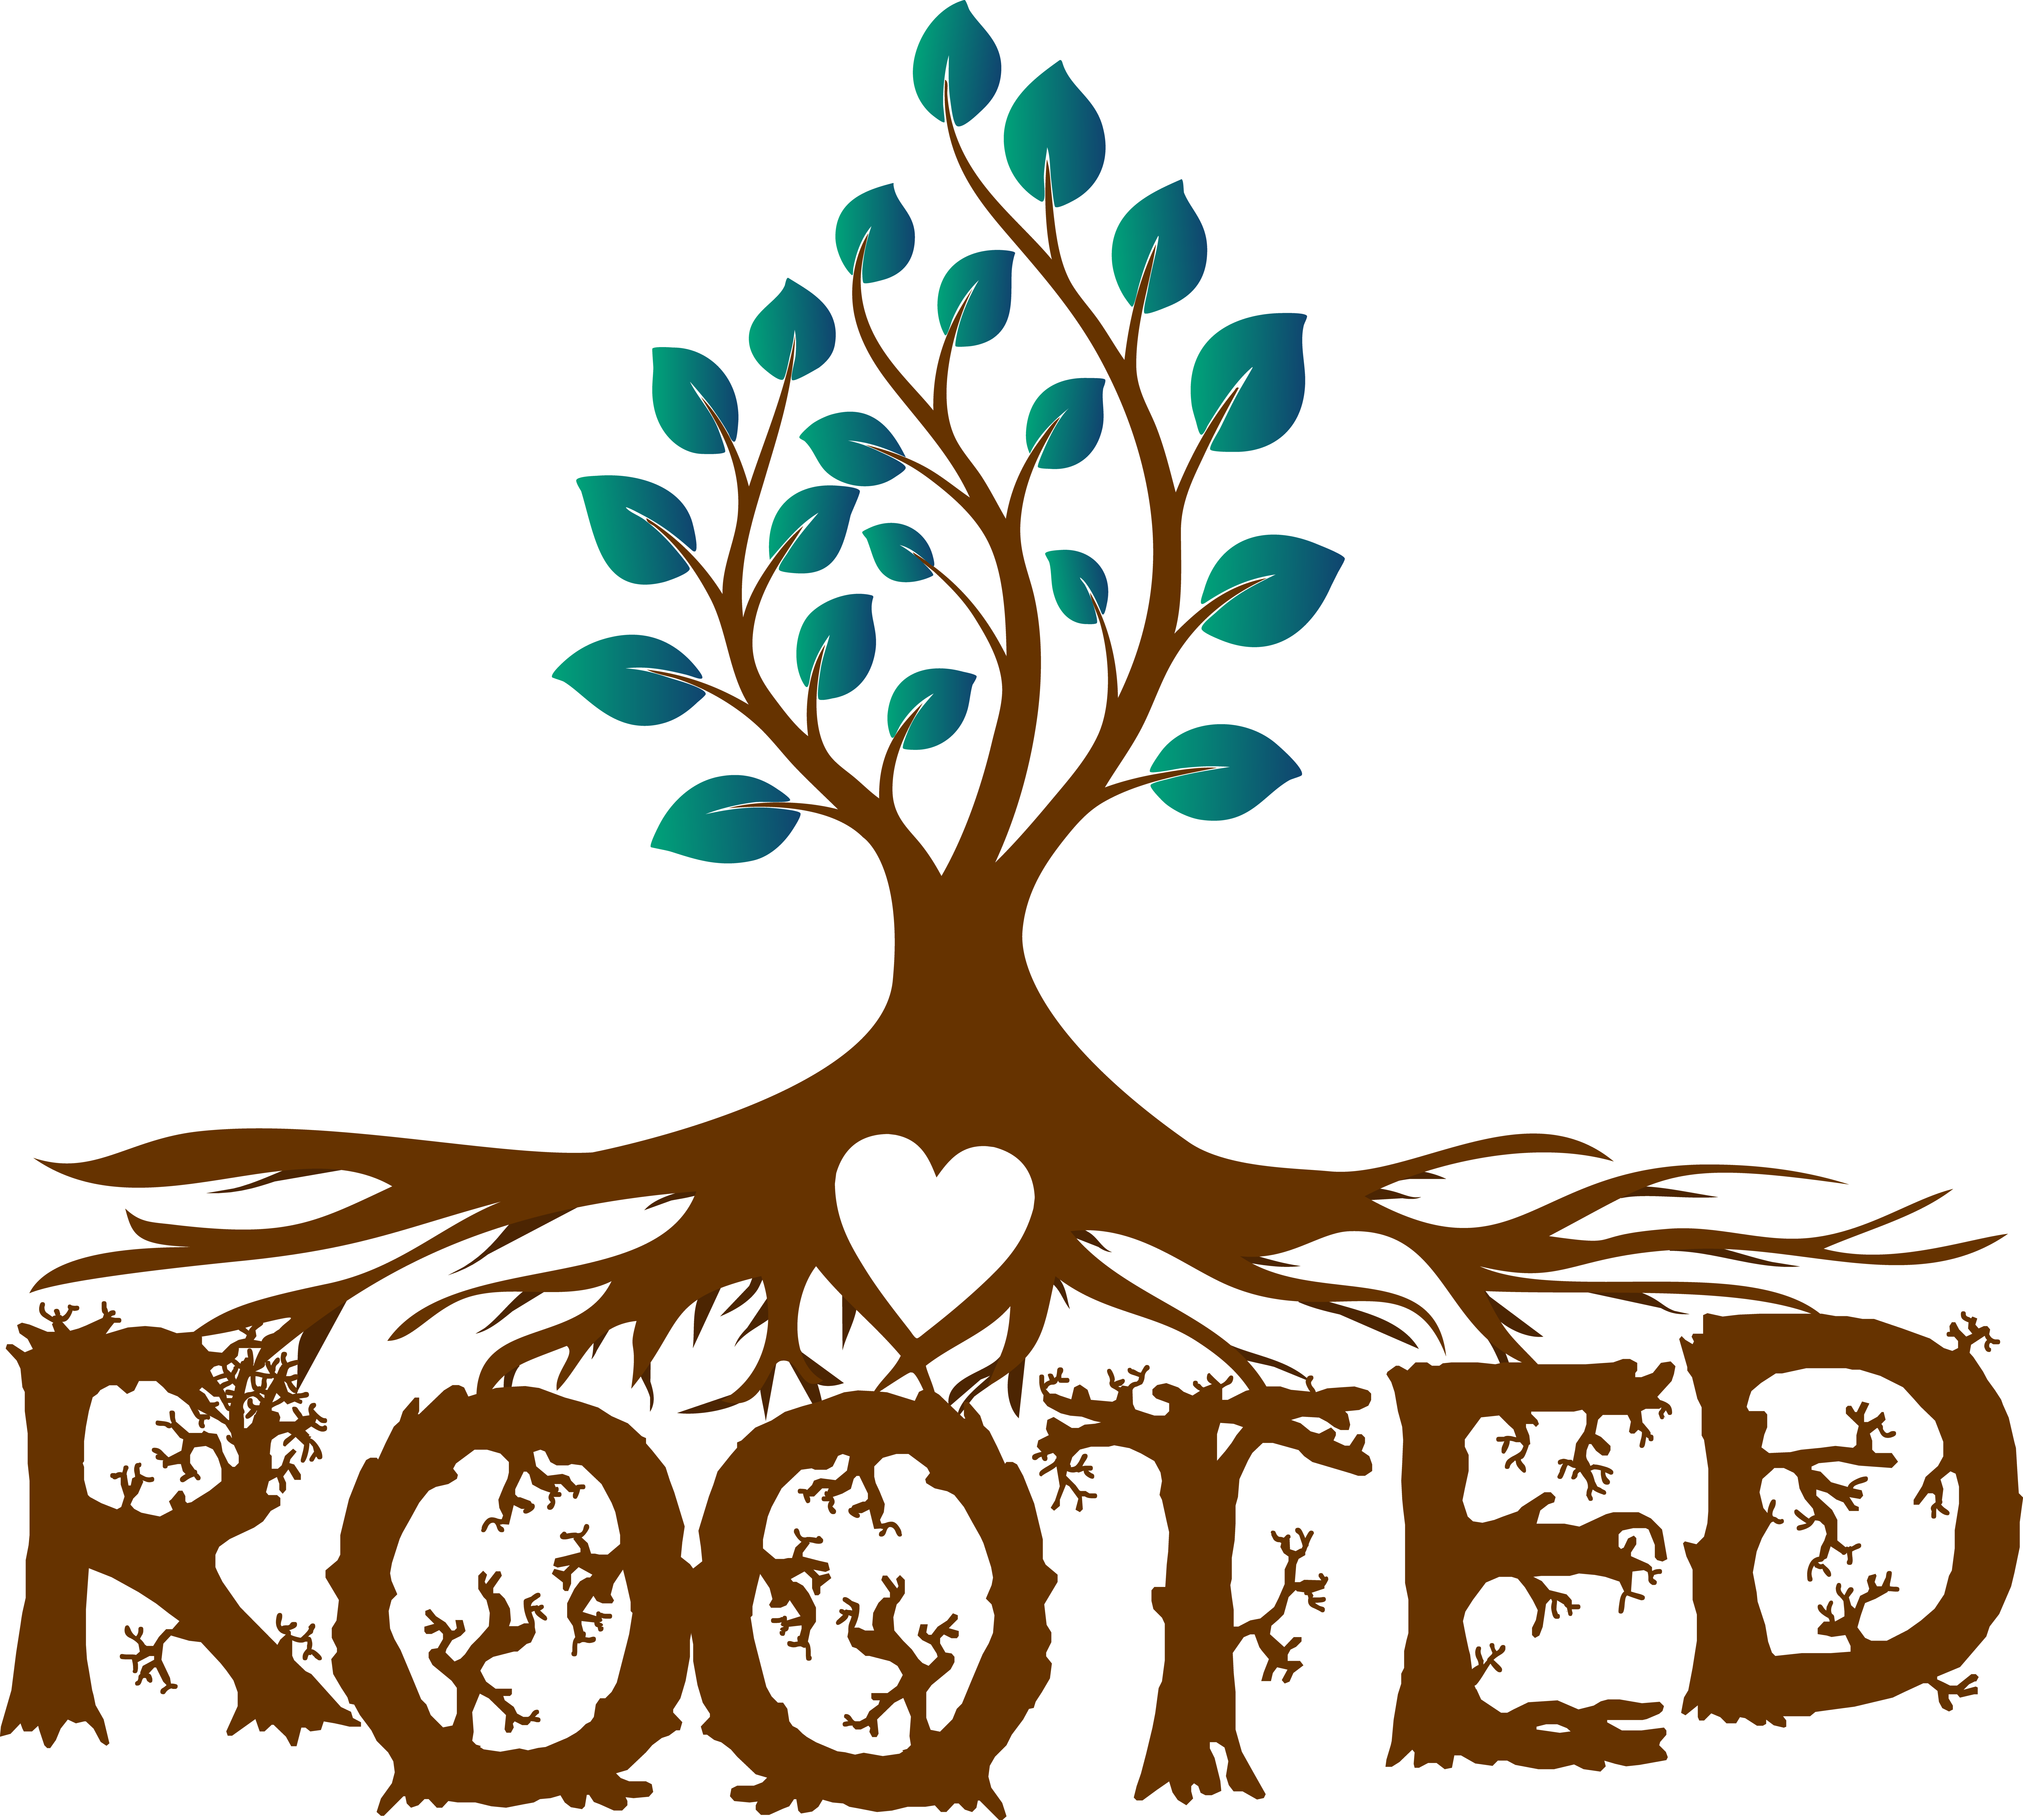 Roots clipart rooted tree, Roots rooted tree Transparent ...